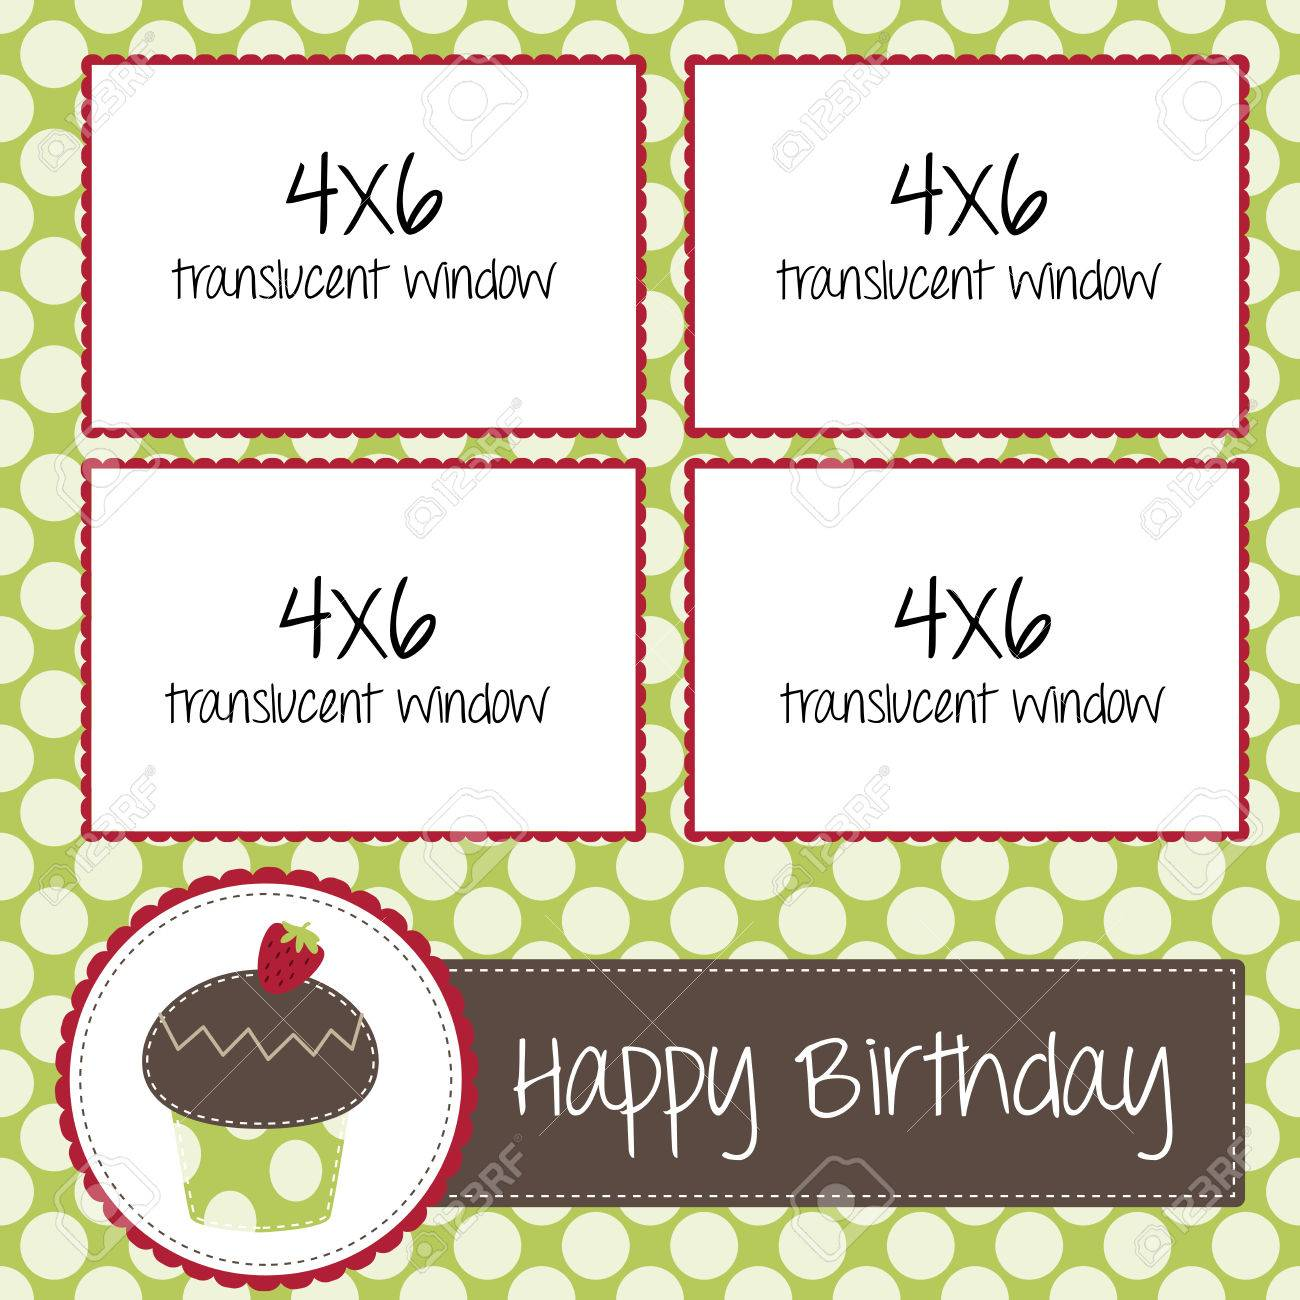 Magnificent 1.5 Inch Circle Template Thin 13 Birthday Invitation Templates Rectangular 16 Birthday Invitation Templates 2 Binder Spine Template Young 2 Inch Button Template Gray2 Inch Circle Template Cupcake Scrapbooking Template For Birthday Or Bakery, 4x6 Frames ..